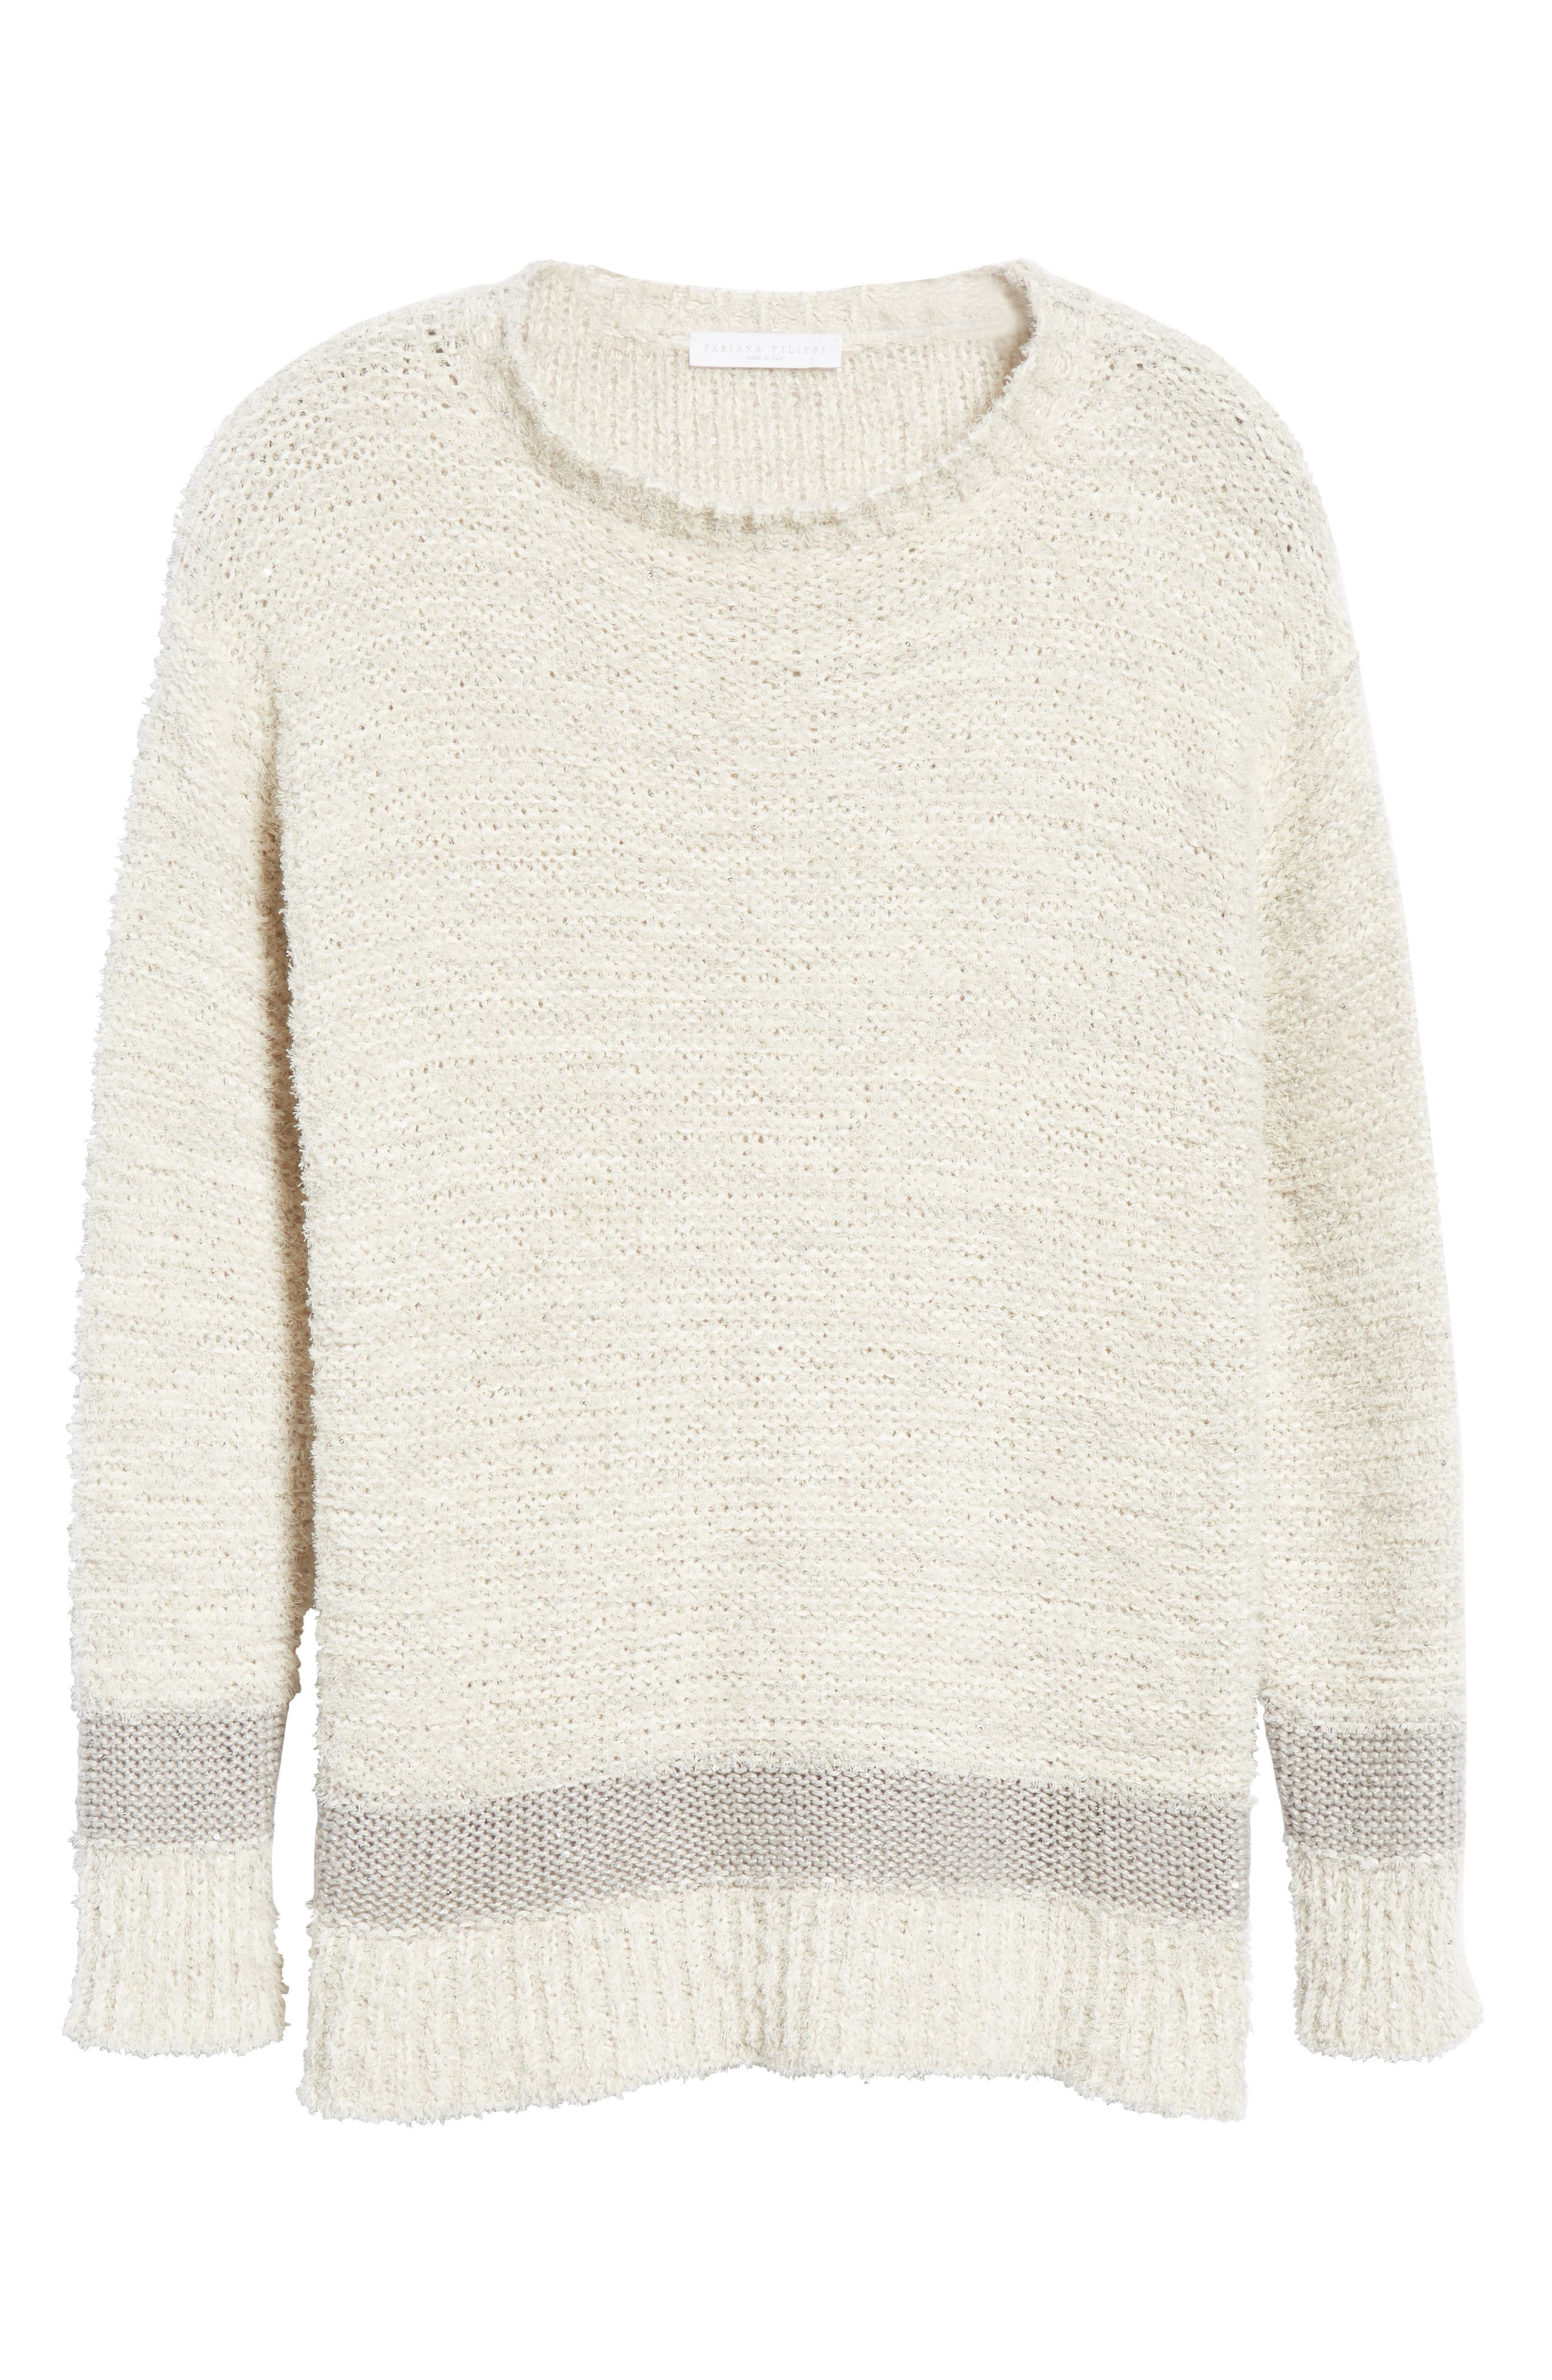 Sequin Knit Sweater,                             Alternate thumbnail 6, color,                             BEIGE